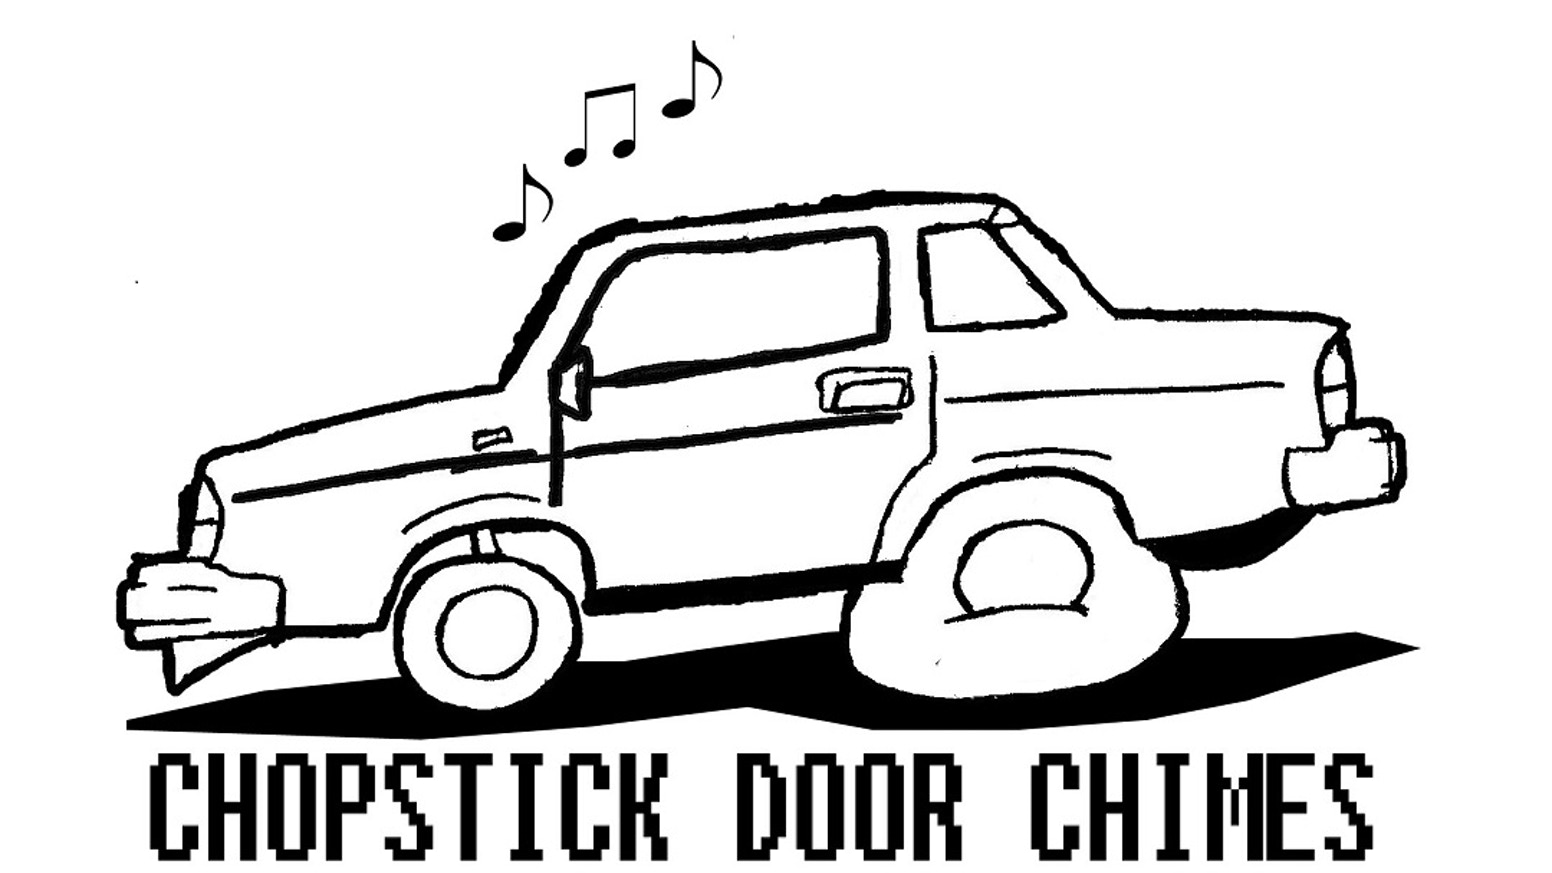 A novelty open door chime for your automobile